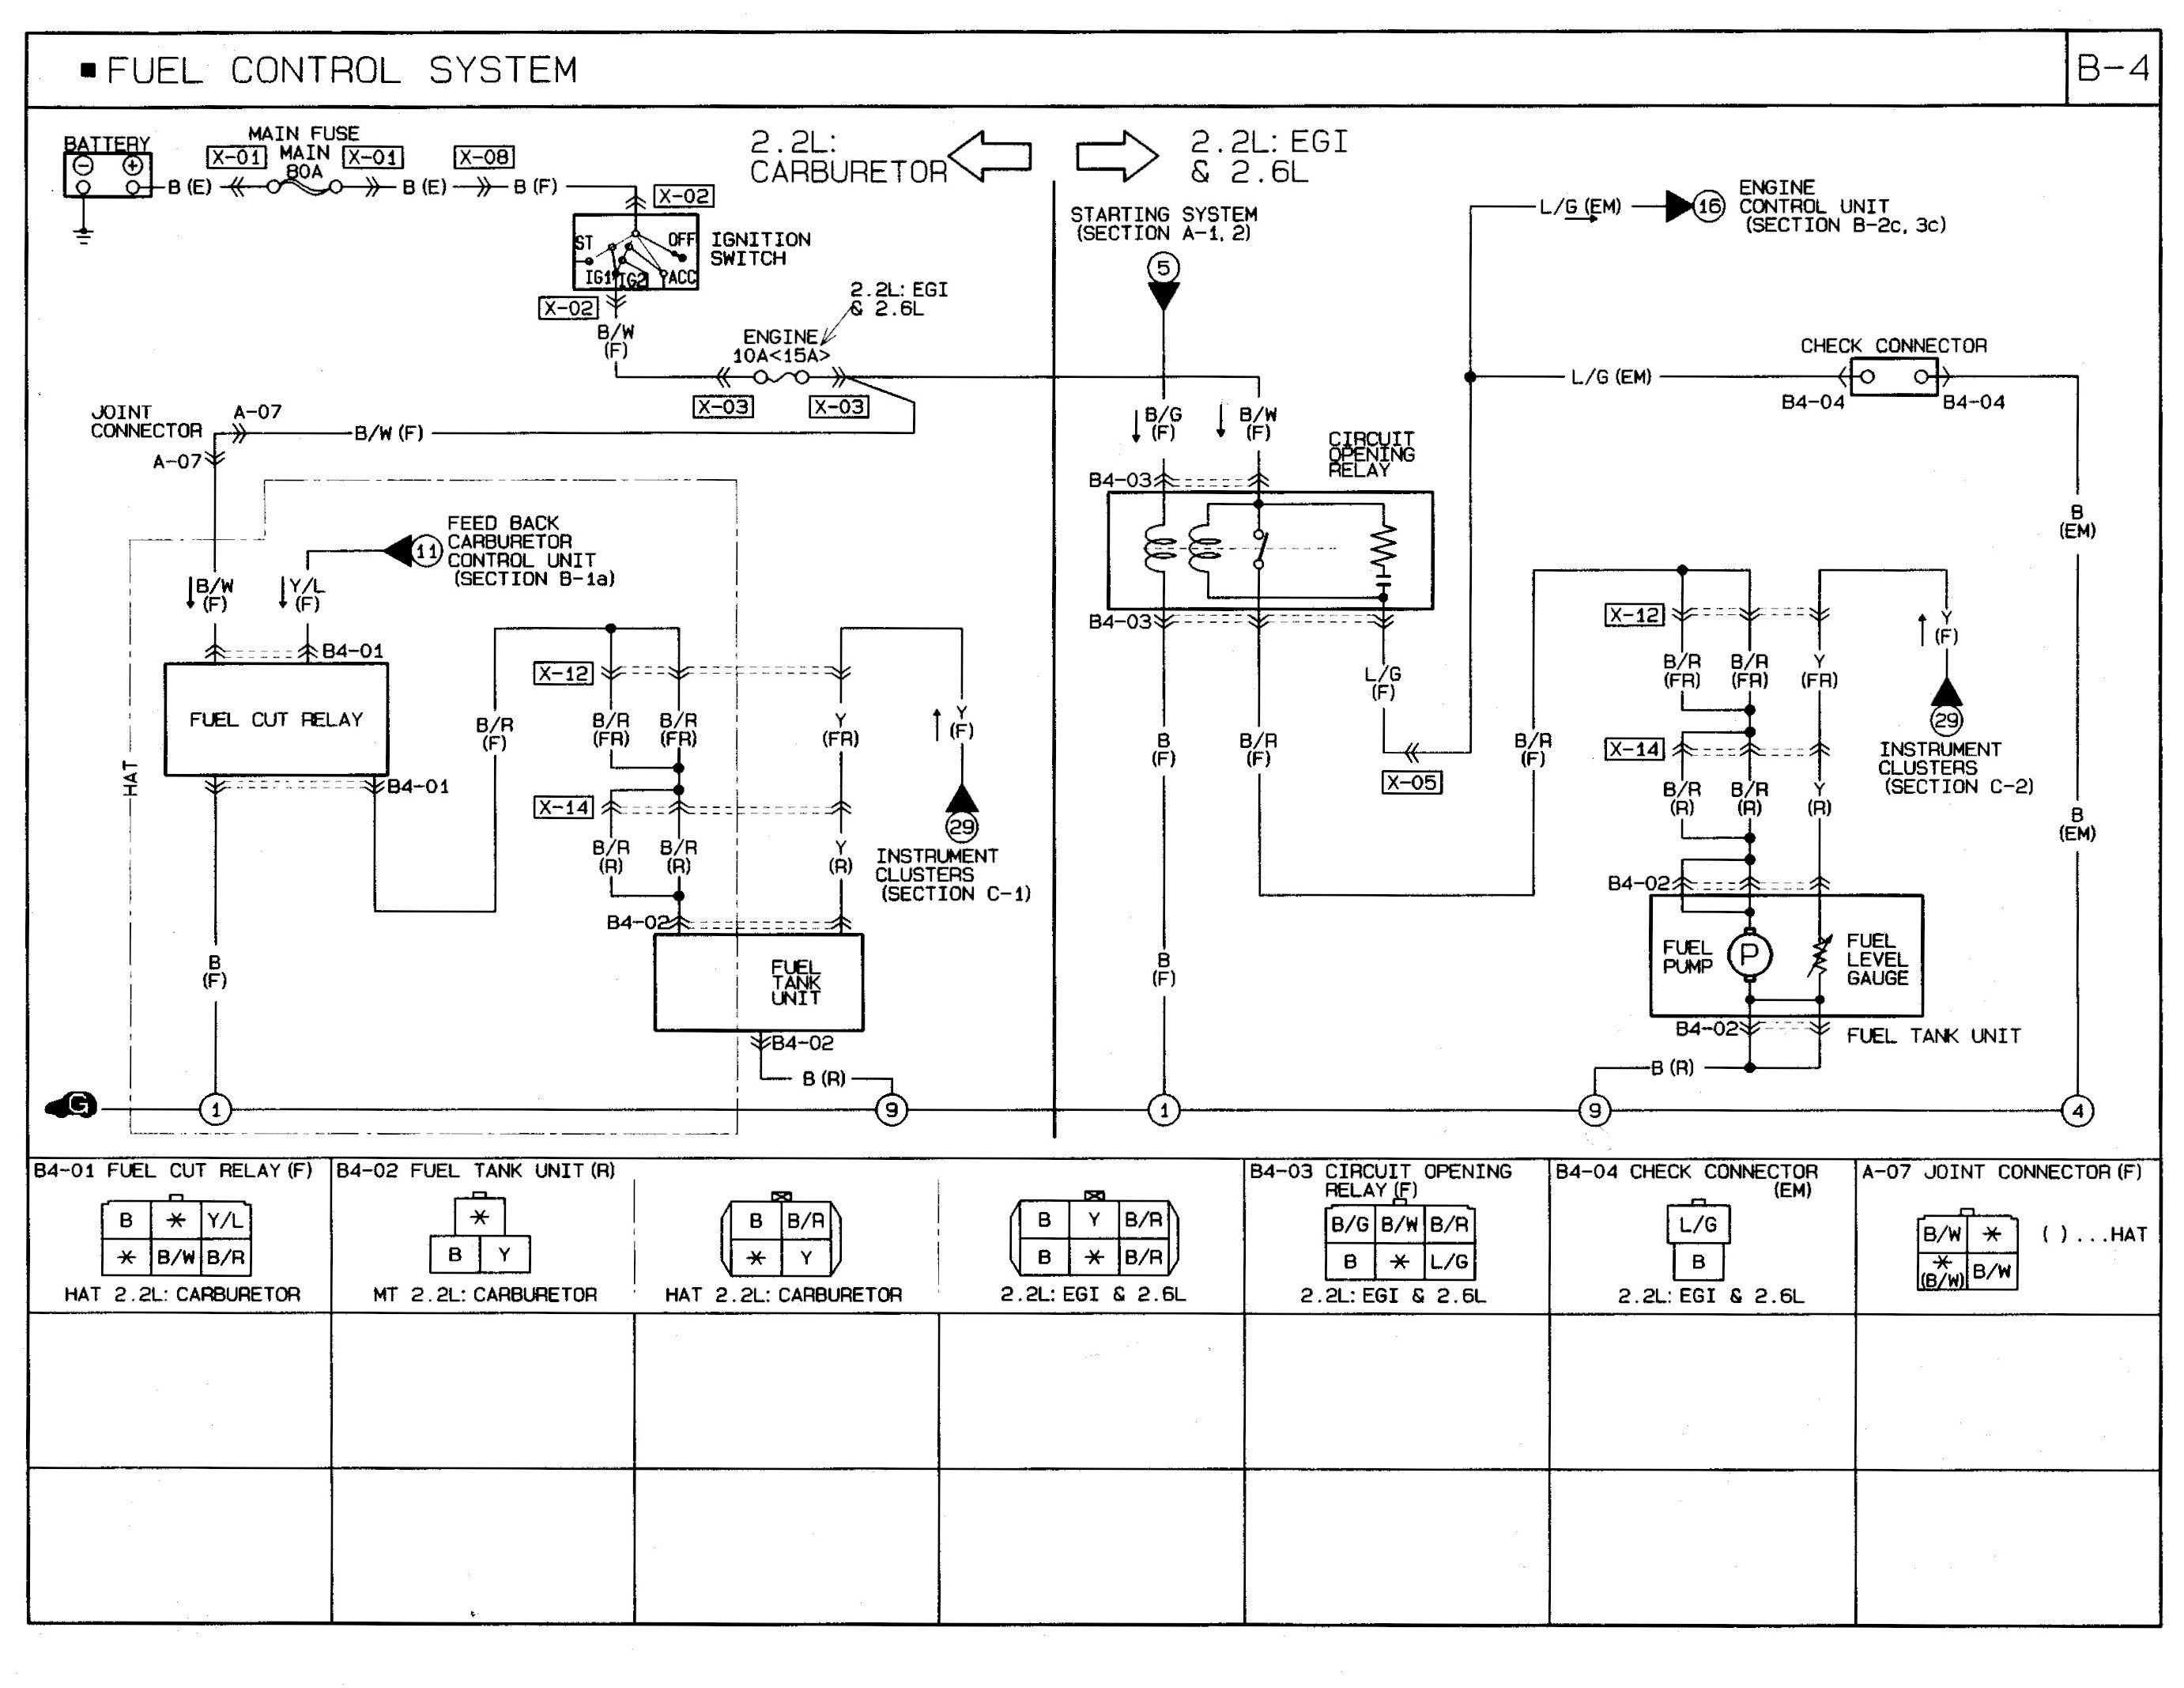 hight resolution of 2003 mazda protege 5 engine compartment wiring schematic saferbrowser yahoo image search results